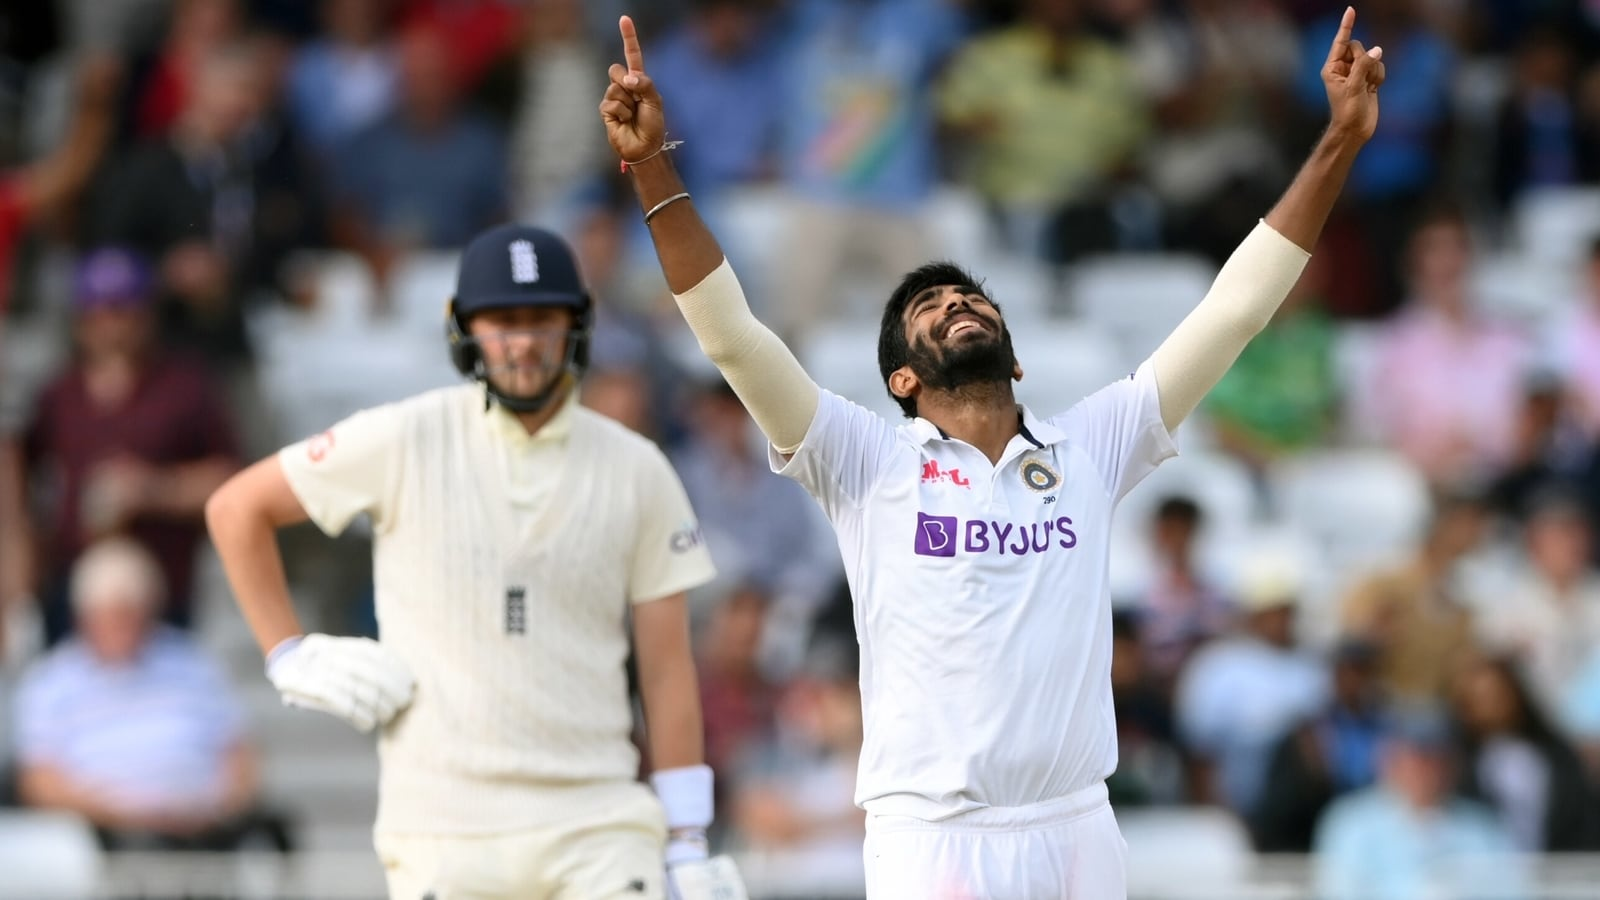 India vs England 1st Test: Jasprit Bumrah's name goes up on honours board  after fifer at Trent Bridge - VIDEO | Cricket - Hindustan Times